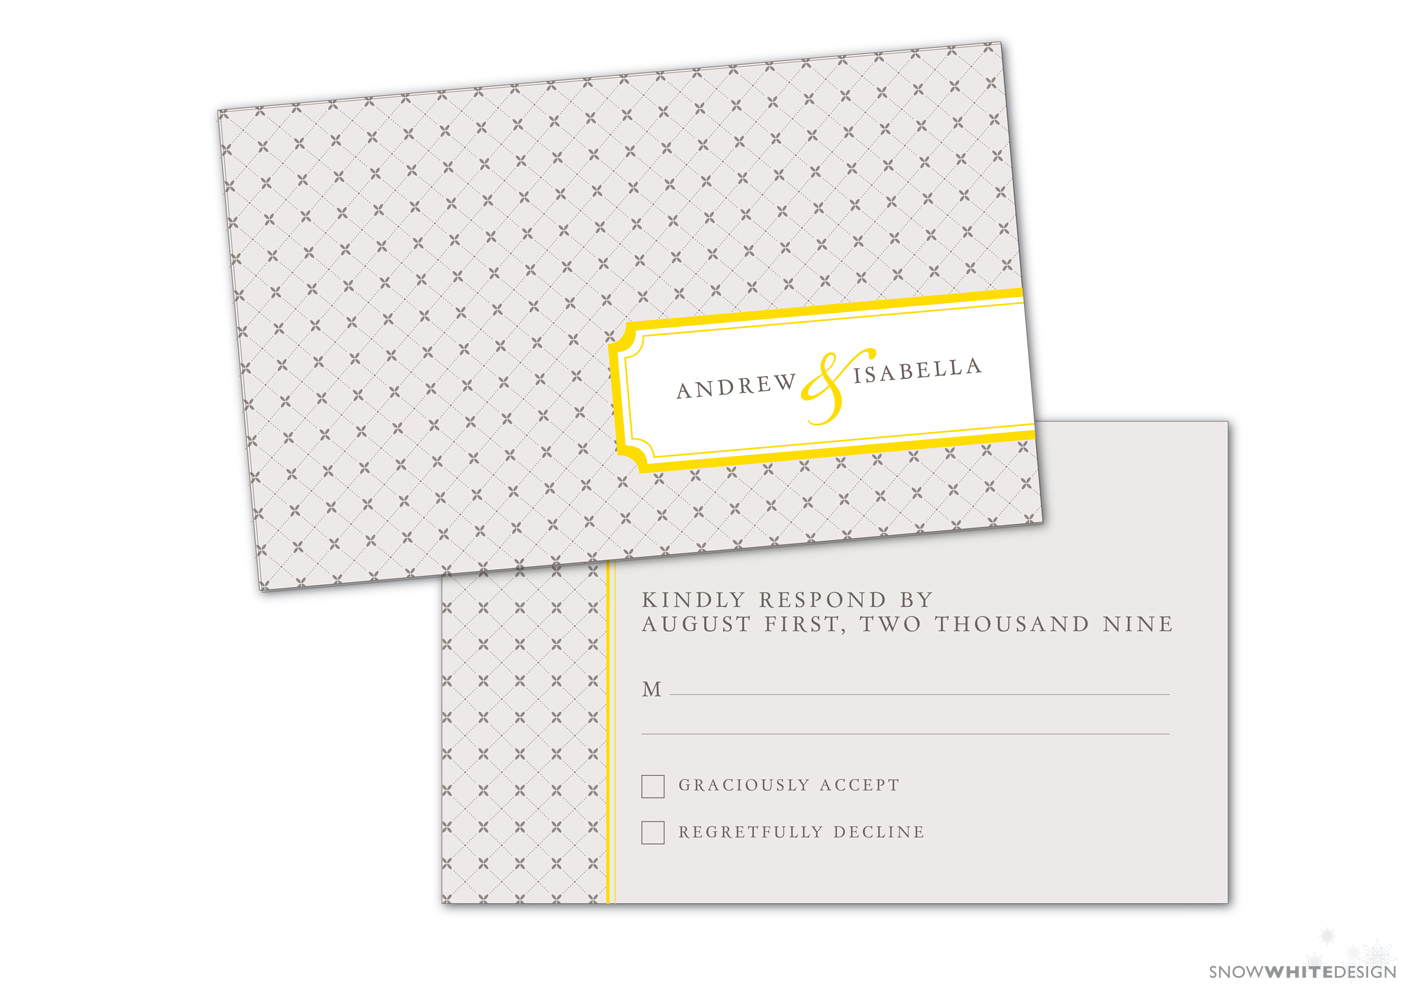 DIY, Stationery, white, yellow, invitation, Invitations, Grey, Rsvp, Design, Invite, Snow, Response, Snow white design